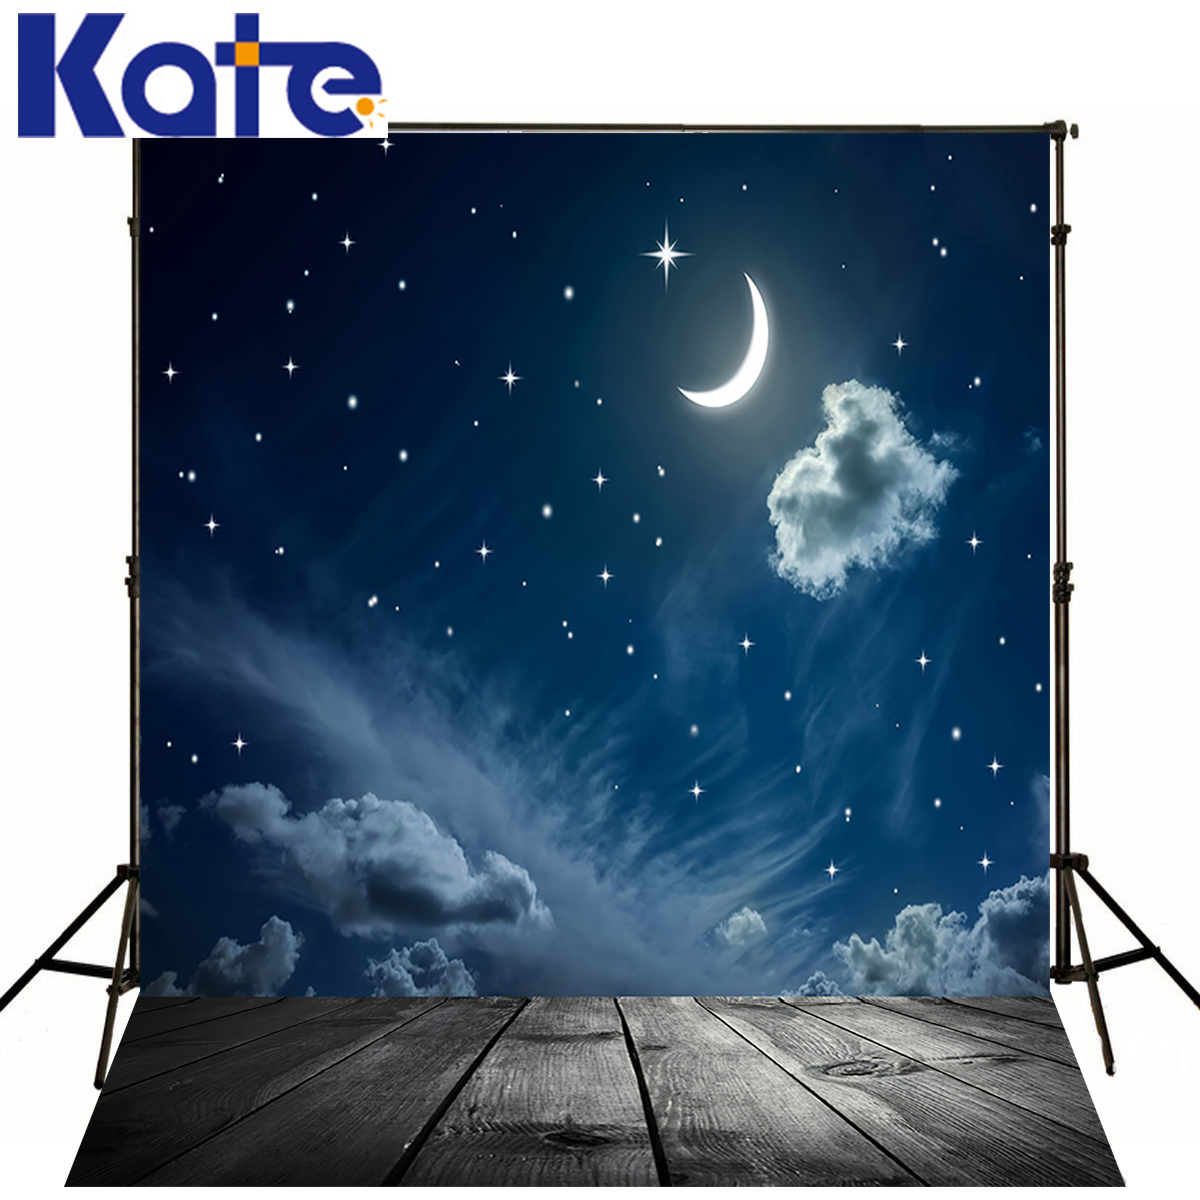 Kate Newborn Baby Photography Backdrops Wood Floor Fundo Fotografico Madeira Starry Sky Clound Photography Background Studio kate dark blue starry sky baby photography backdrops with cloud studio washable seamless photography background material